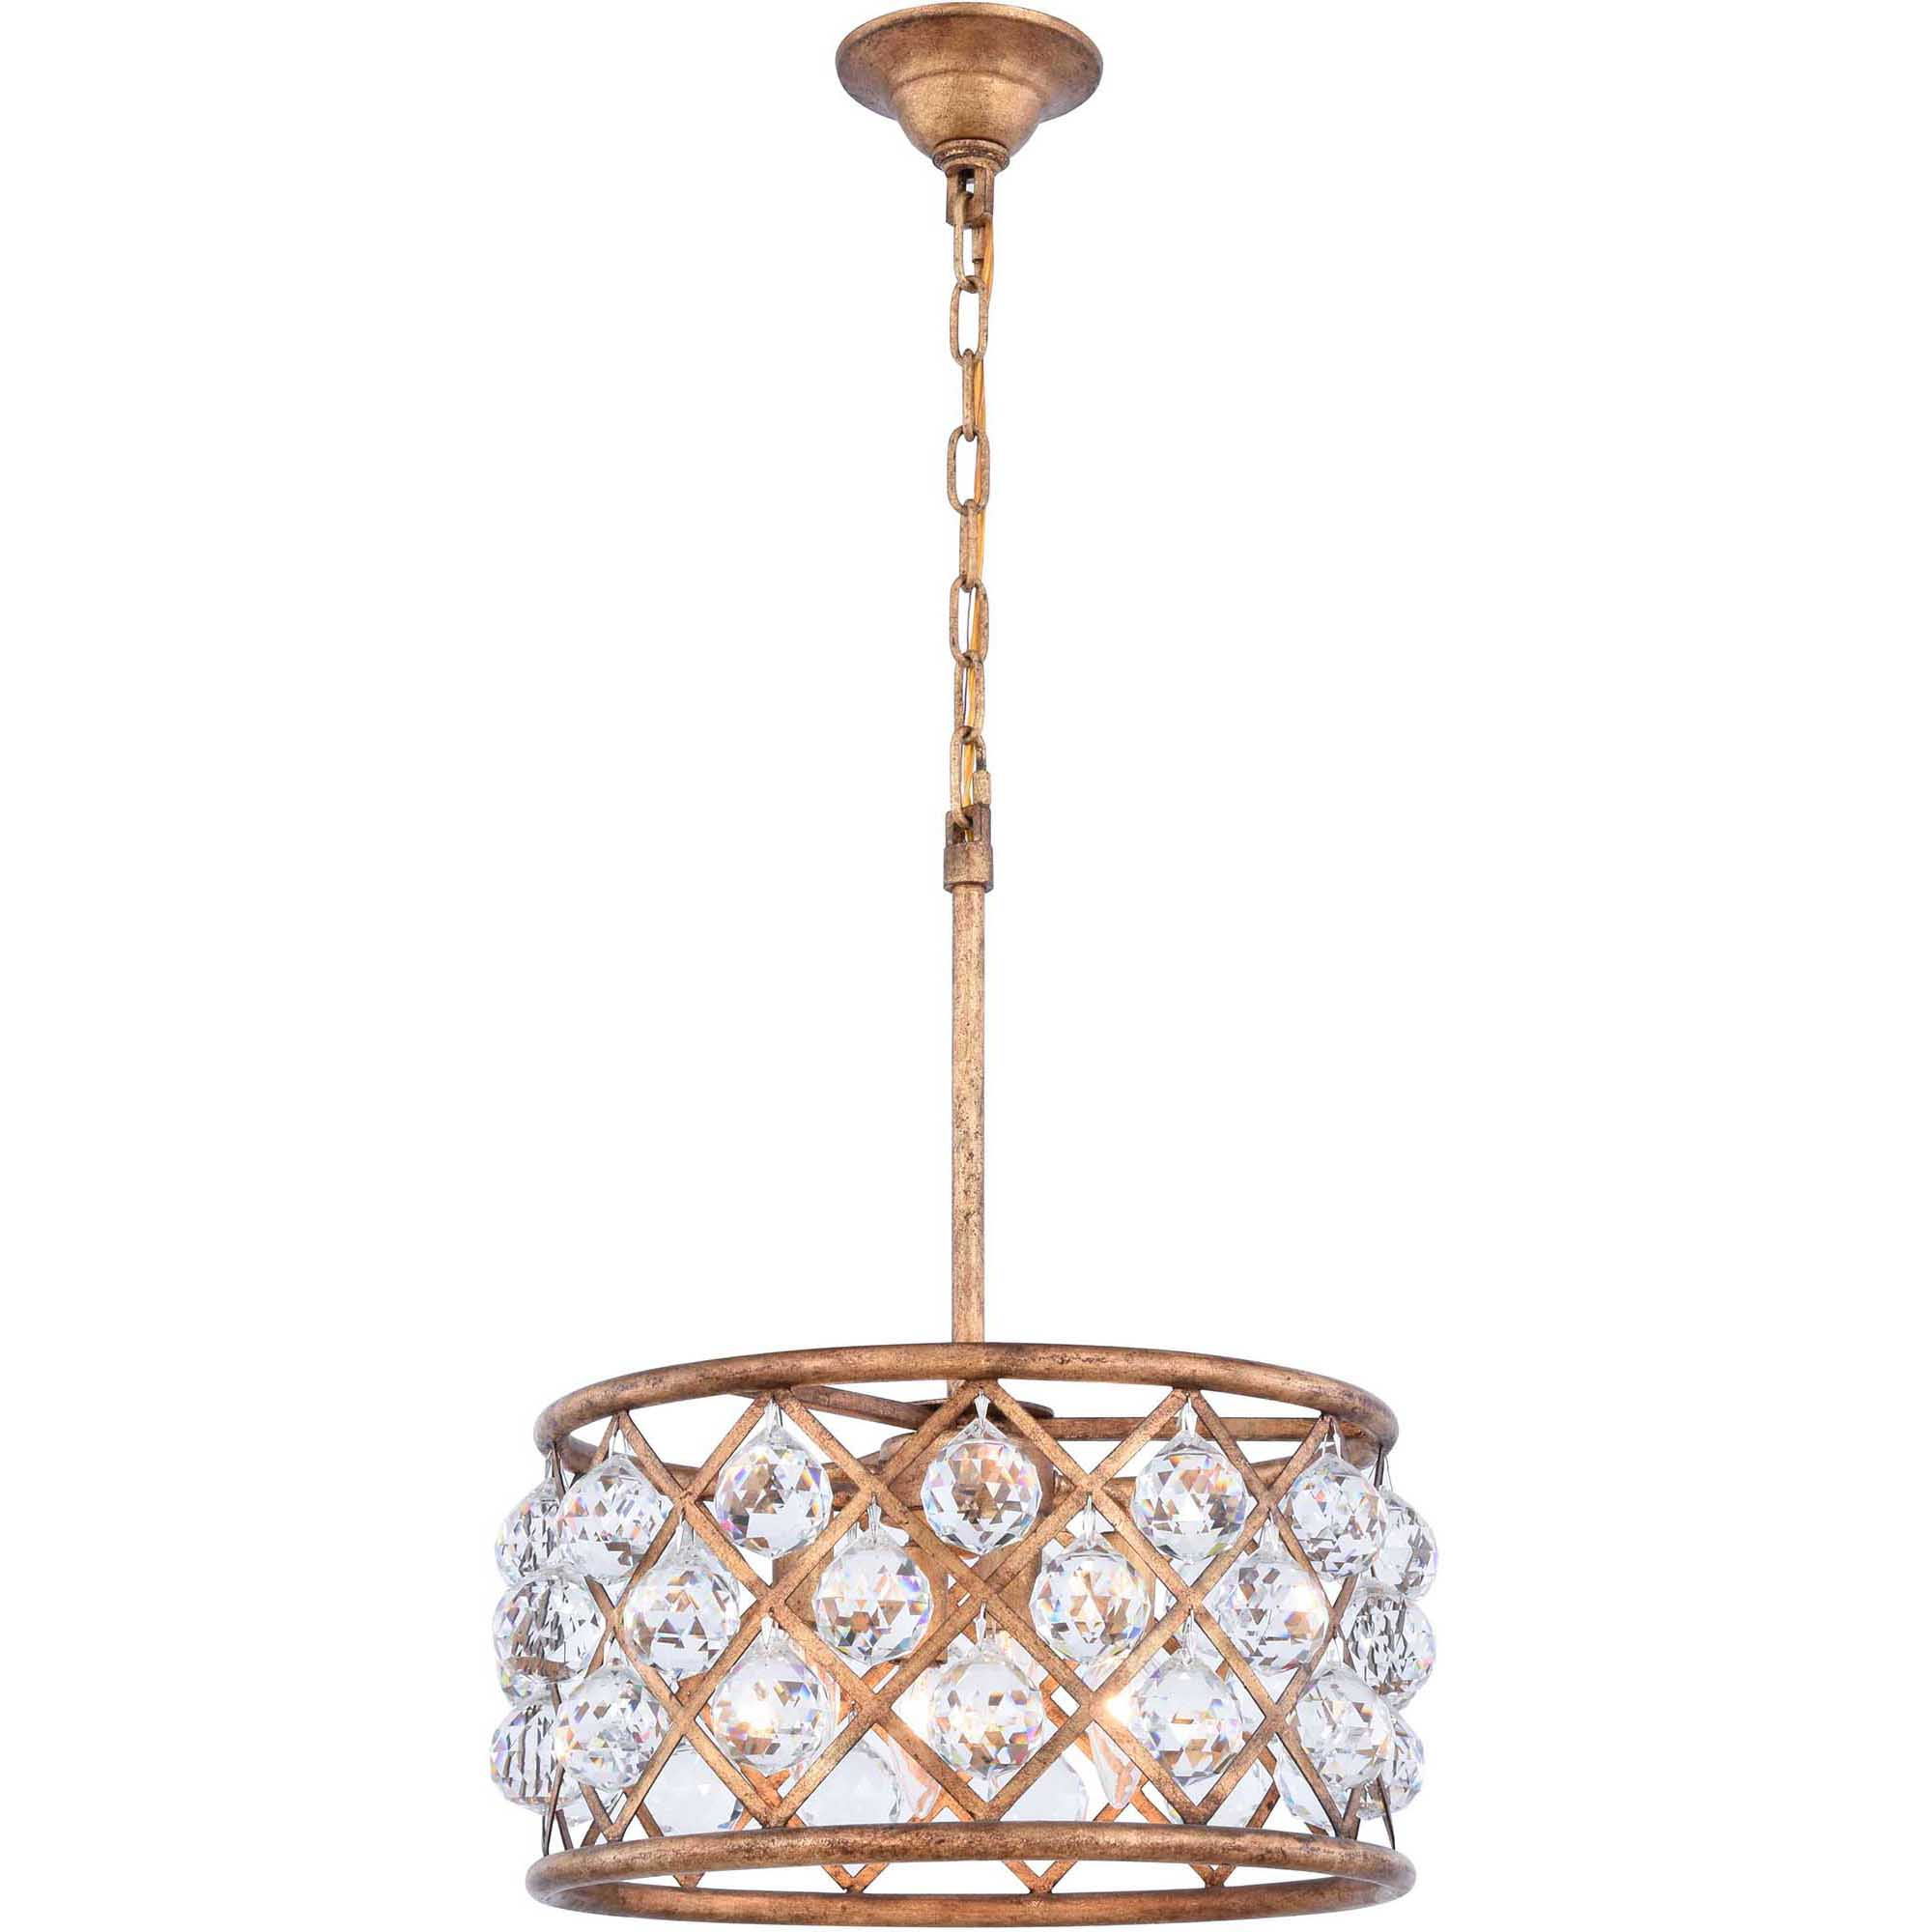 "Madison Collection Pendant Lamp D:16"" H:9"" Lt:4 Golden Iron Finish Royal Cut Crystal (Clear)"